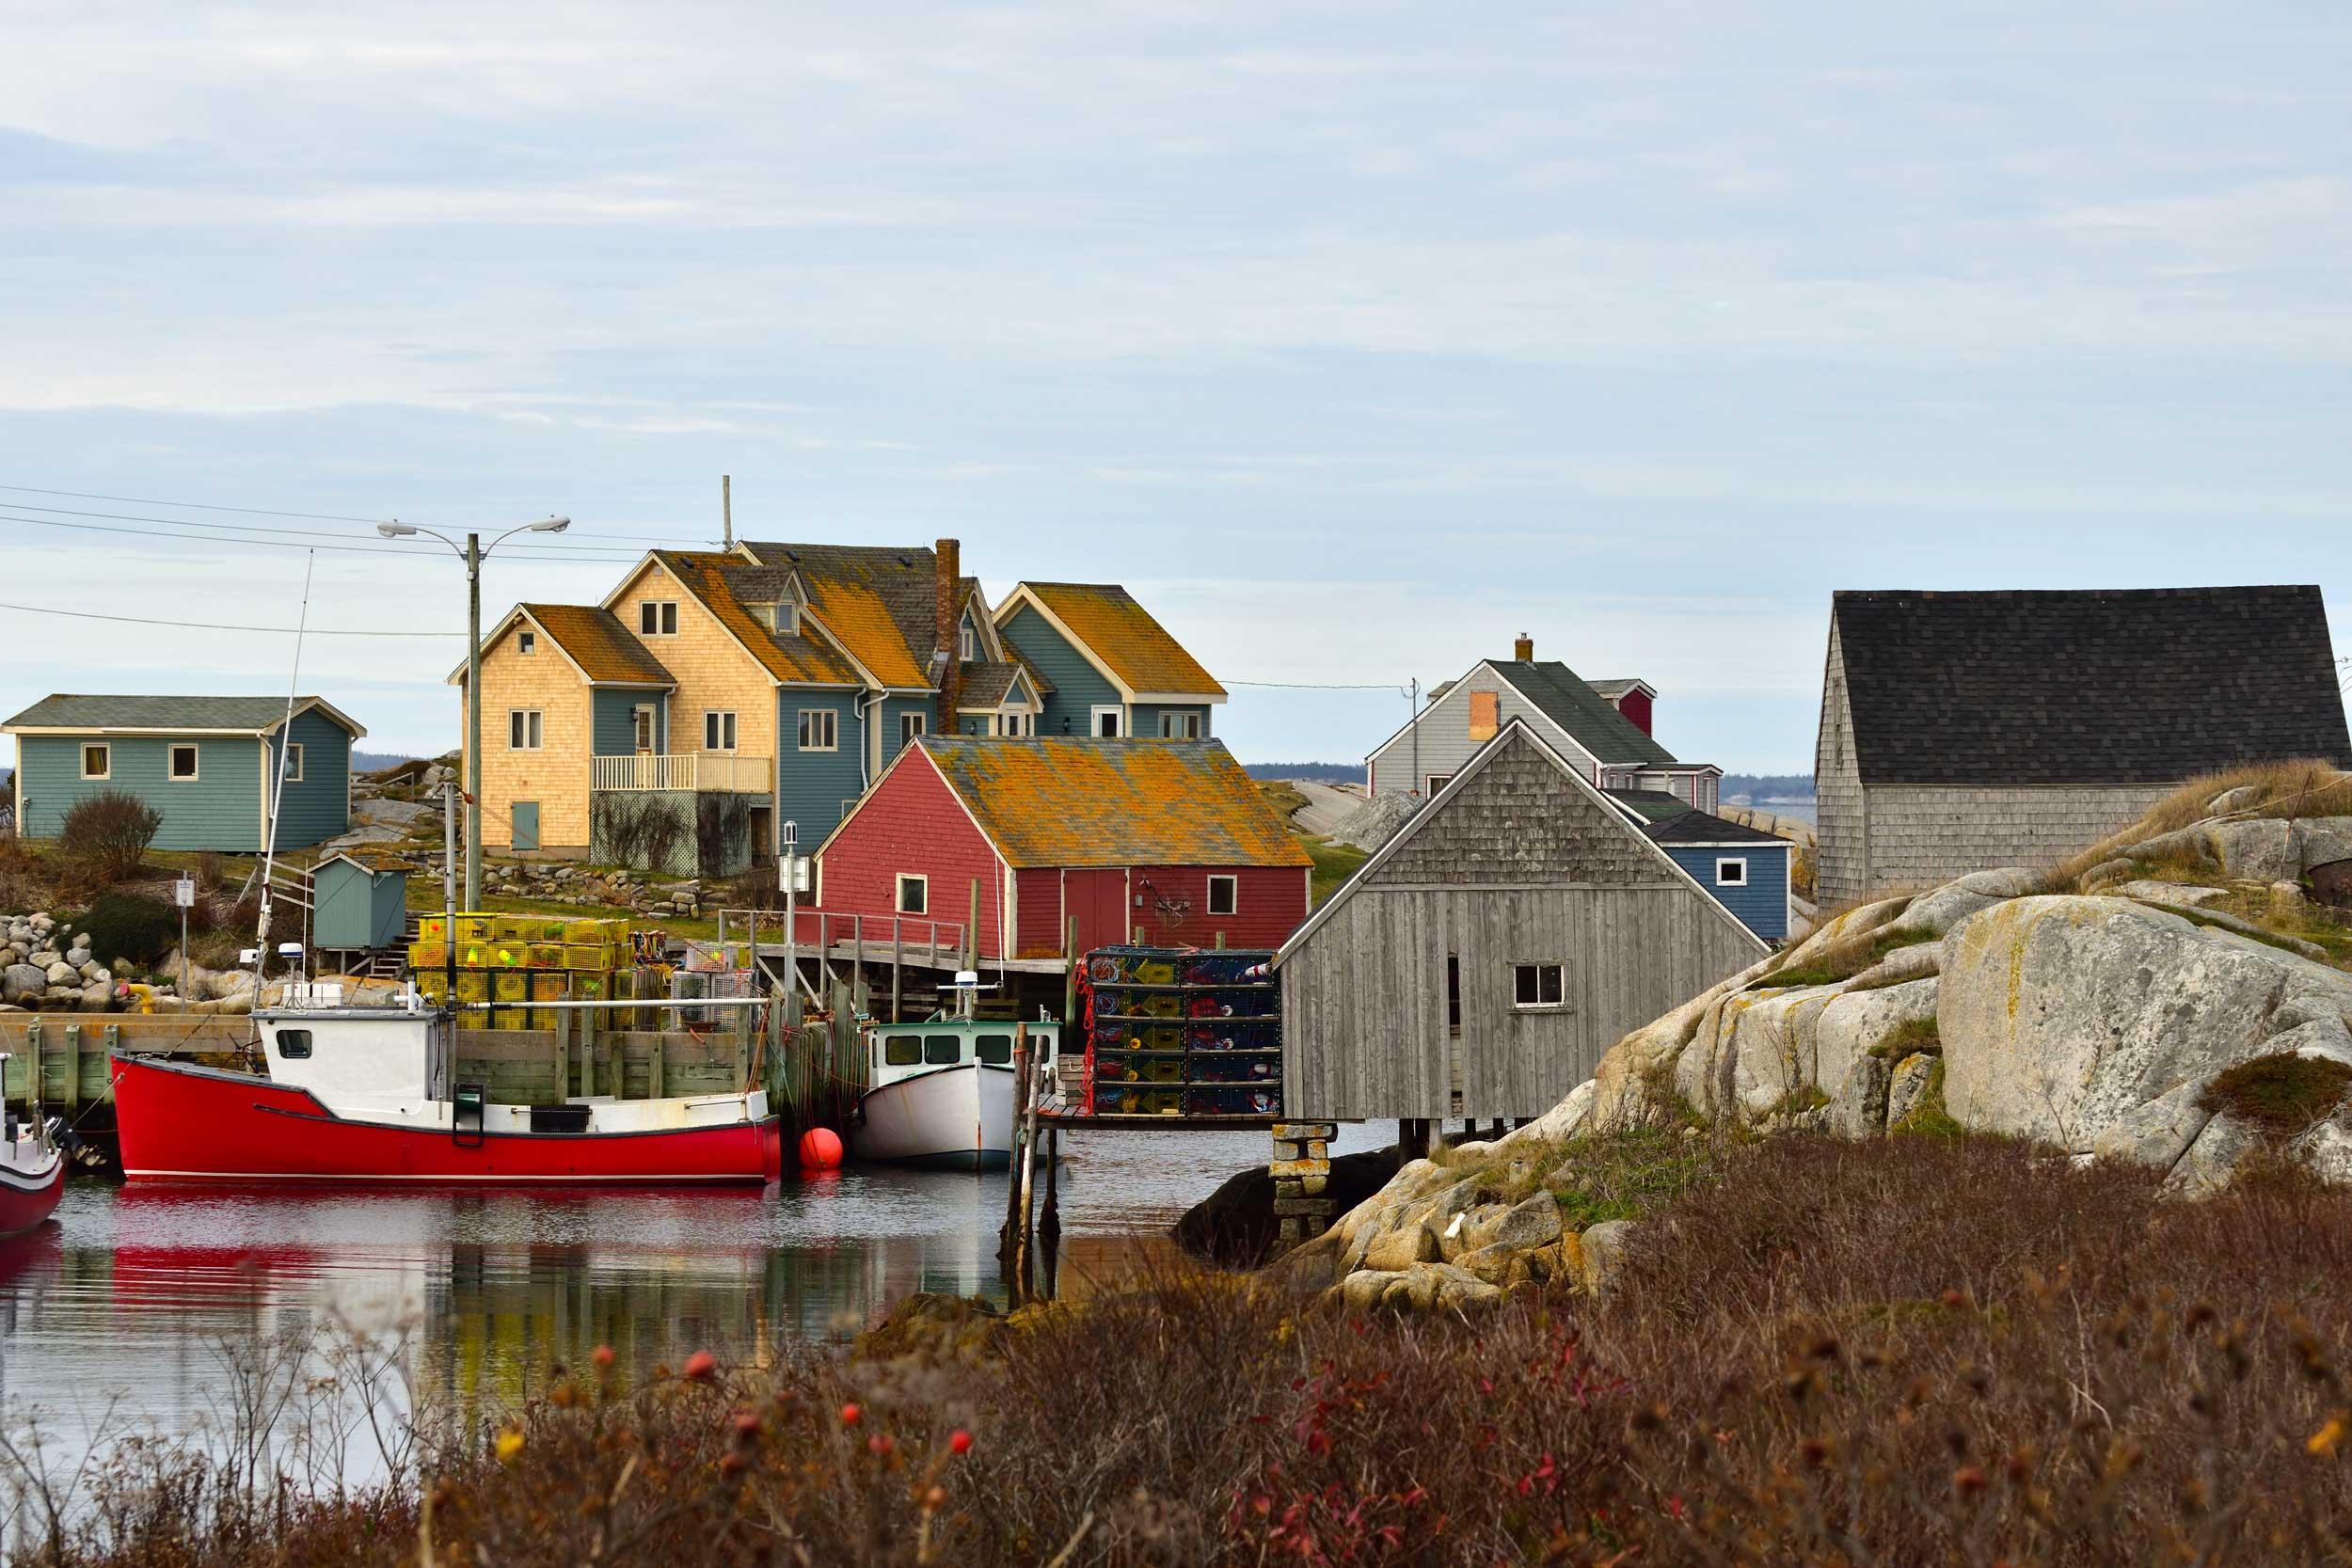 A red boat on water amongst brightly coloured buildings, Peggy's Cove, Halifax